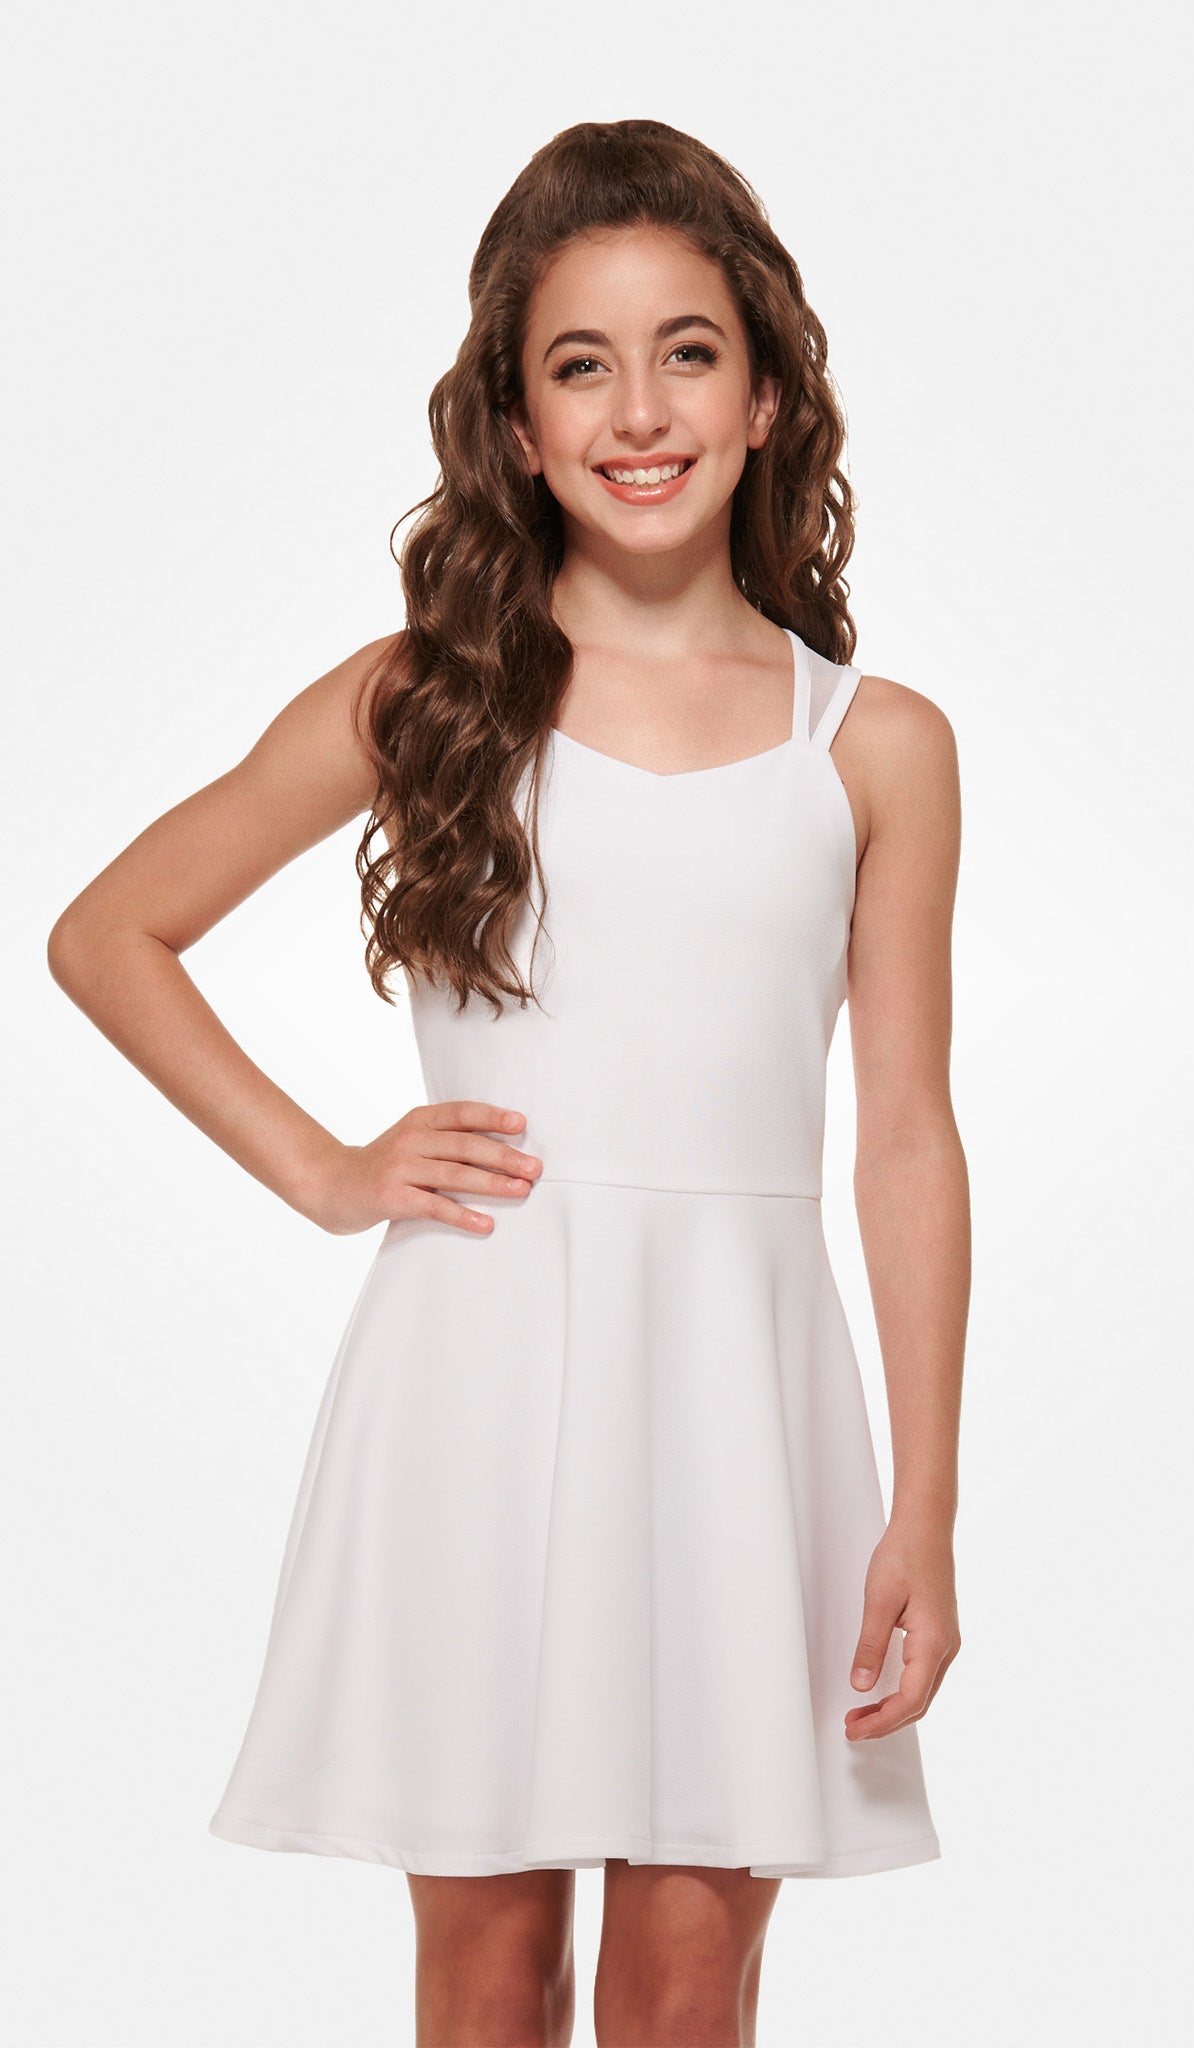 The Sally Miller Aspen Dress - White checkered texture stretch knit skater dress with mesh straps